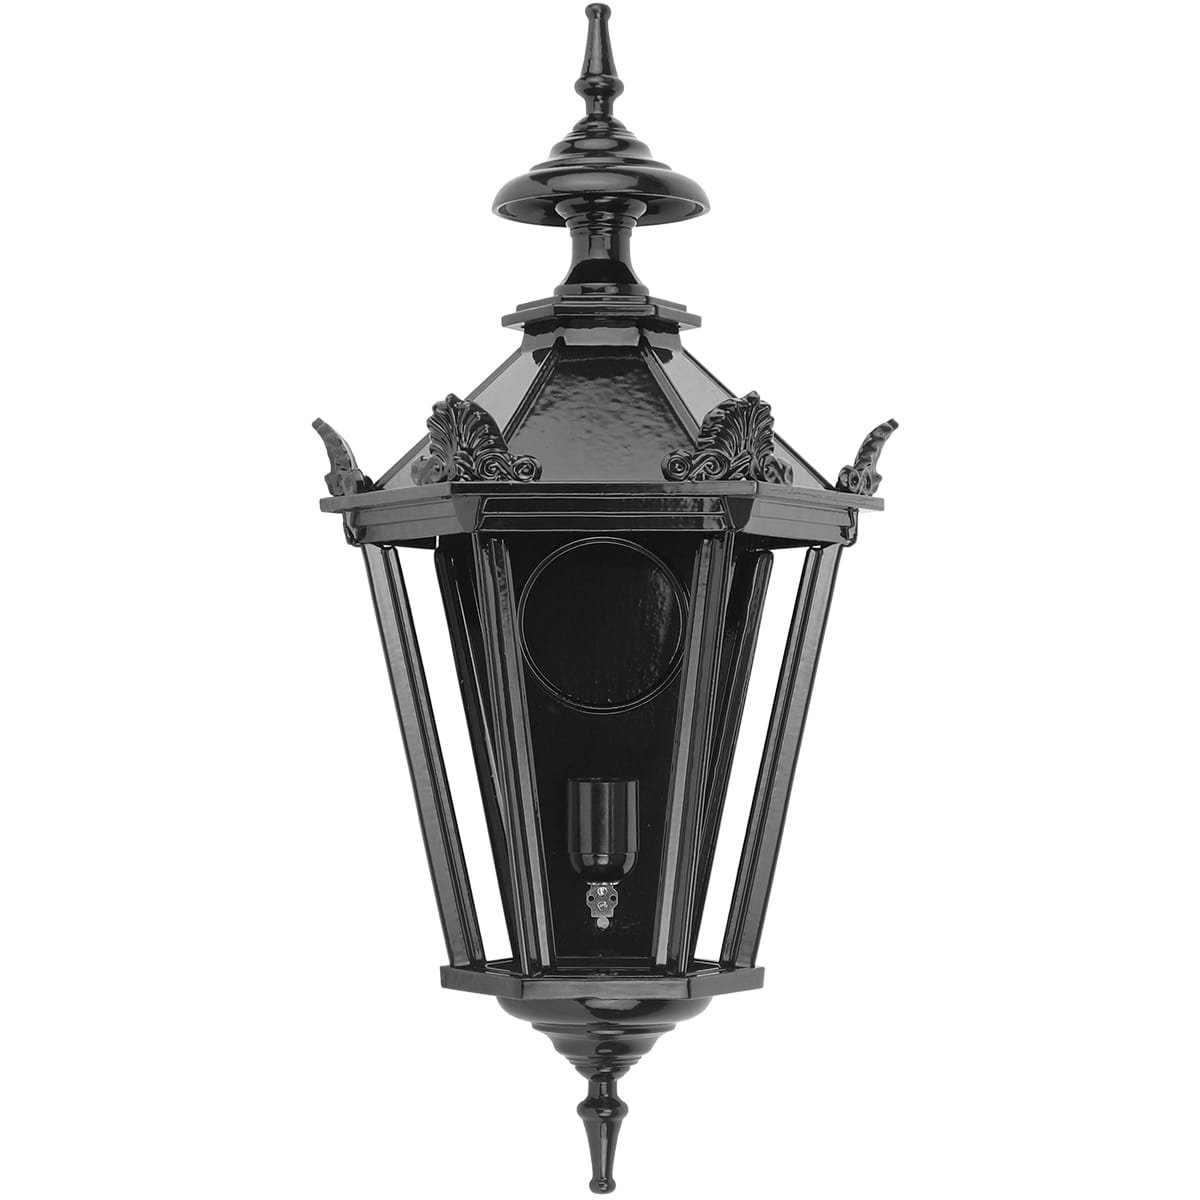 Outdoor lighting Classic Rural Wall light Zwolle with crowns L - 64 cm